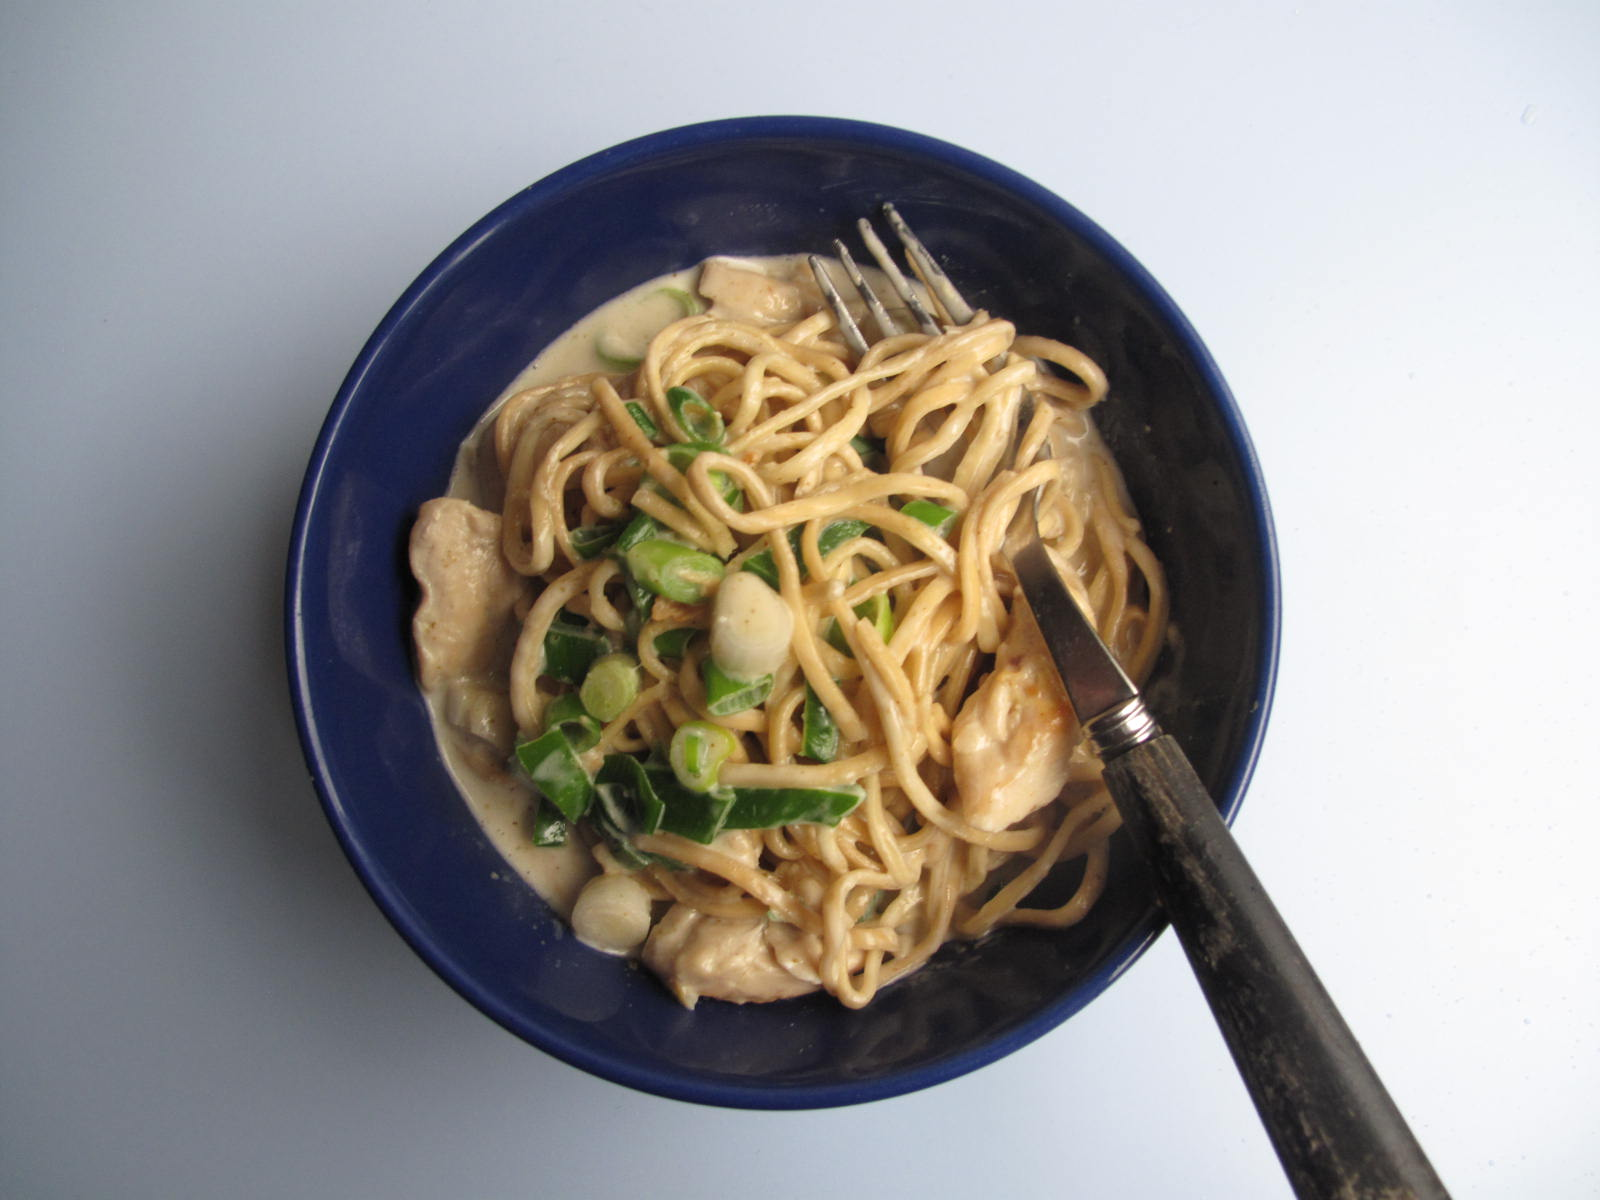 GINGER CHICKEN NOODLES